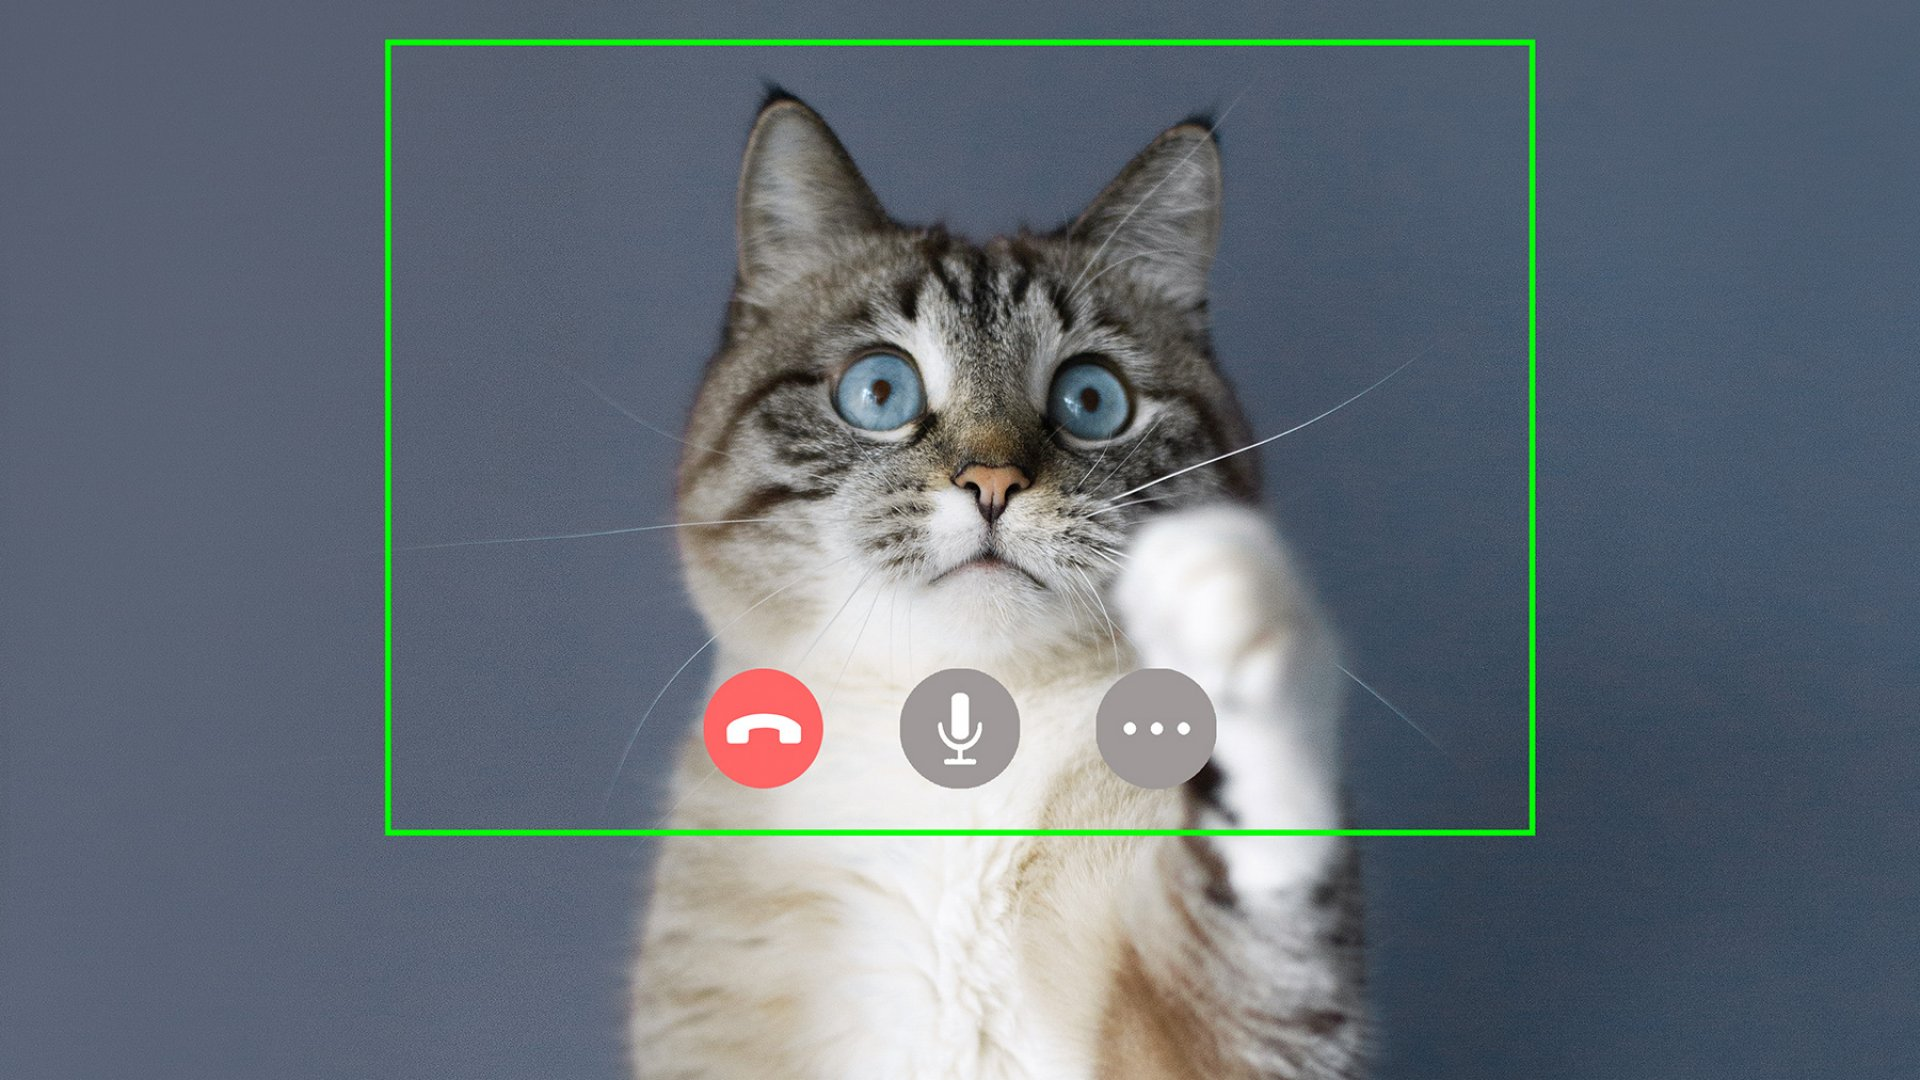 A Lawyer Who Appeared as a Kitten on Zoom Provides a Lesson in How to Handle Embarrassment